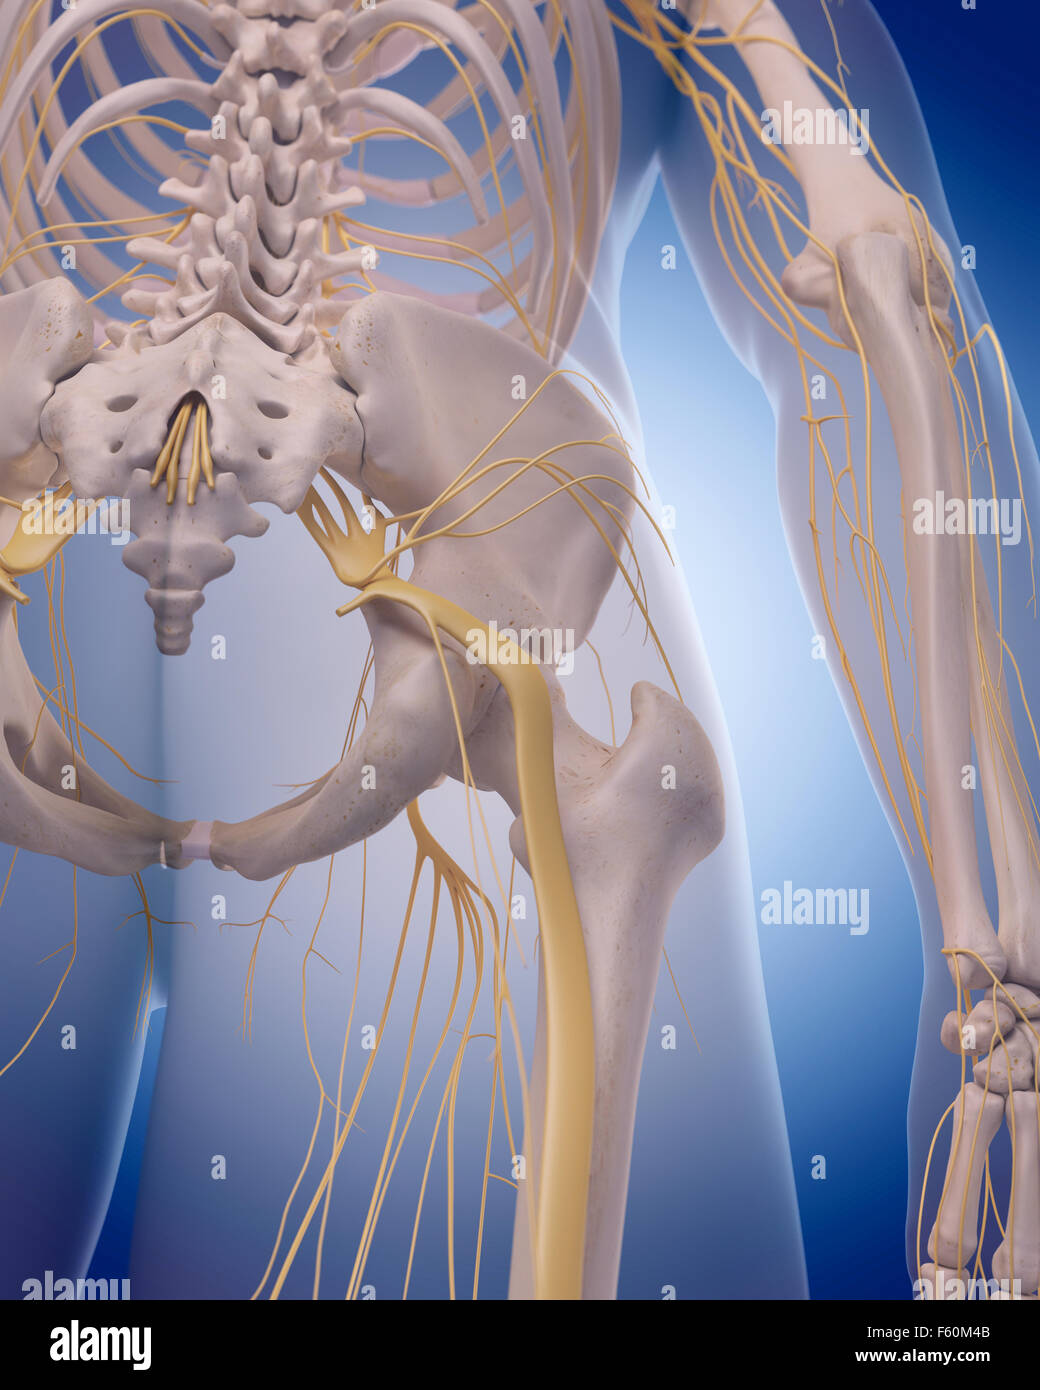 medically accurate illustration -  sciatic nerve - Stock Image